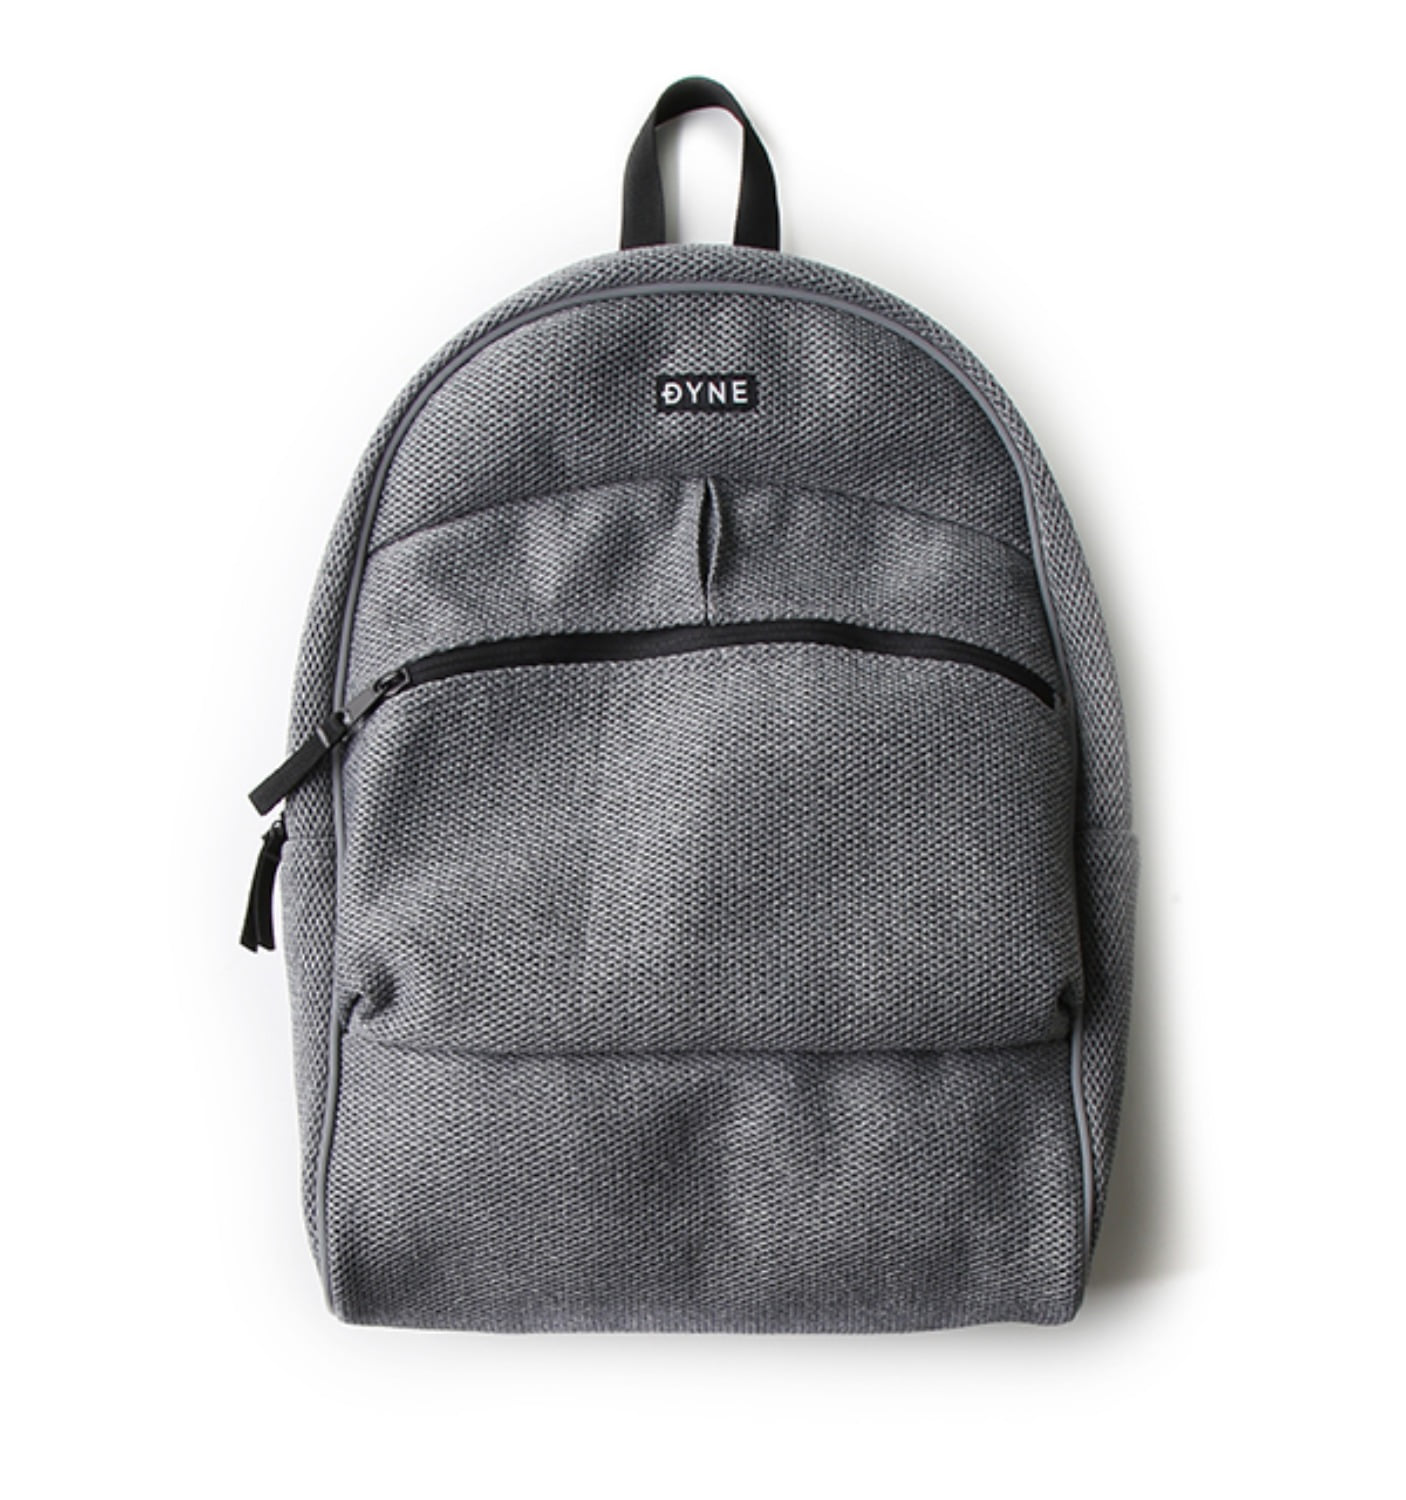 D4001 Giga Knit Backpack(C.burst Grey/C.Dancer)